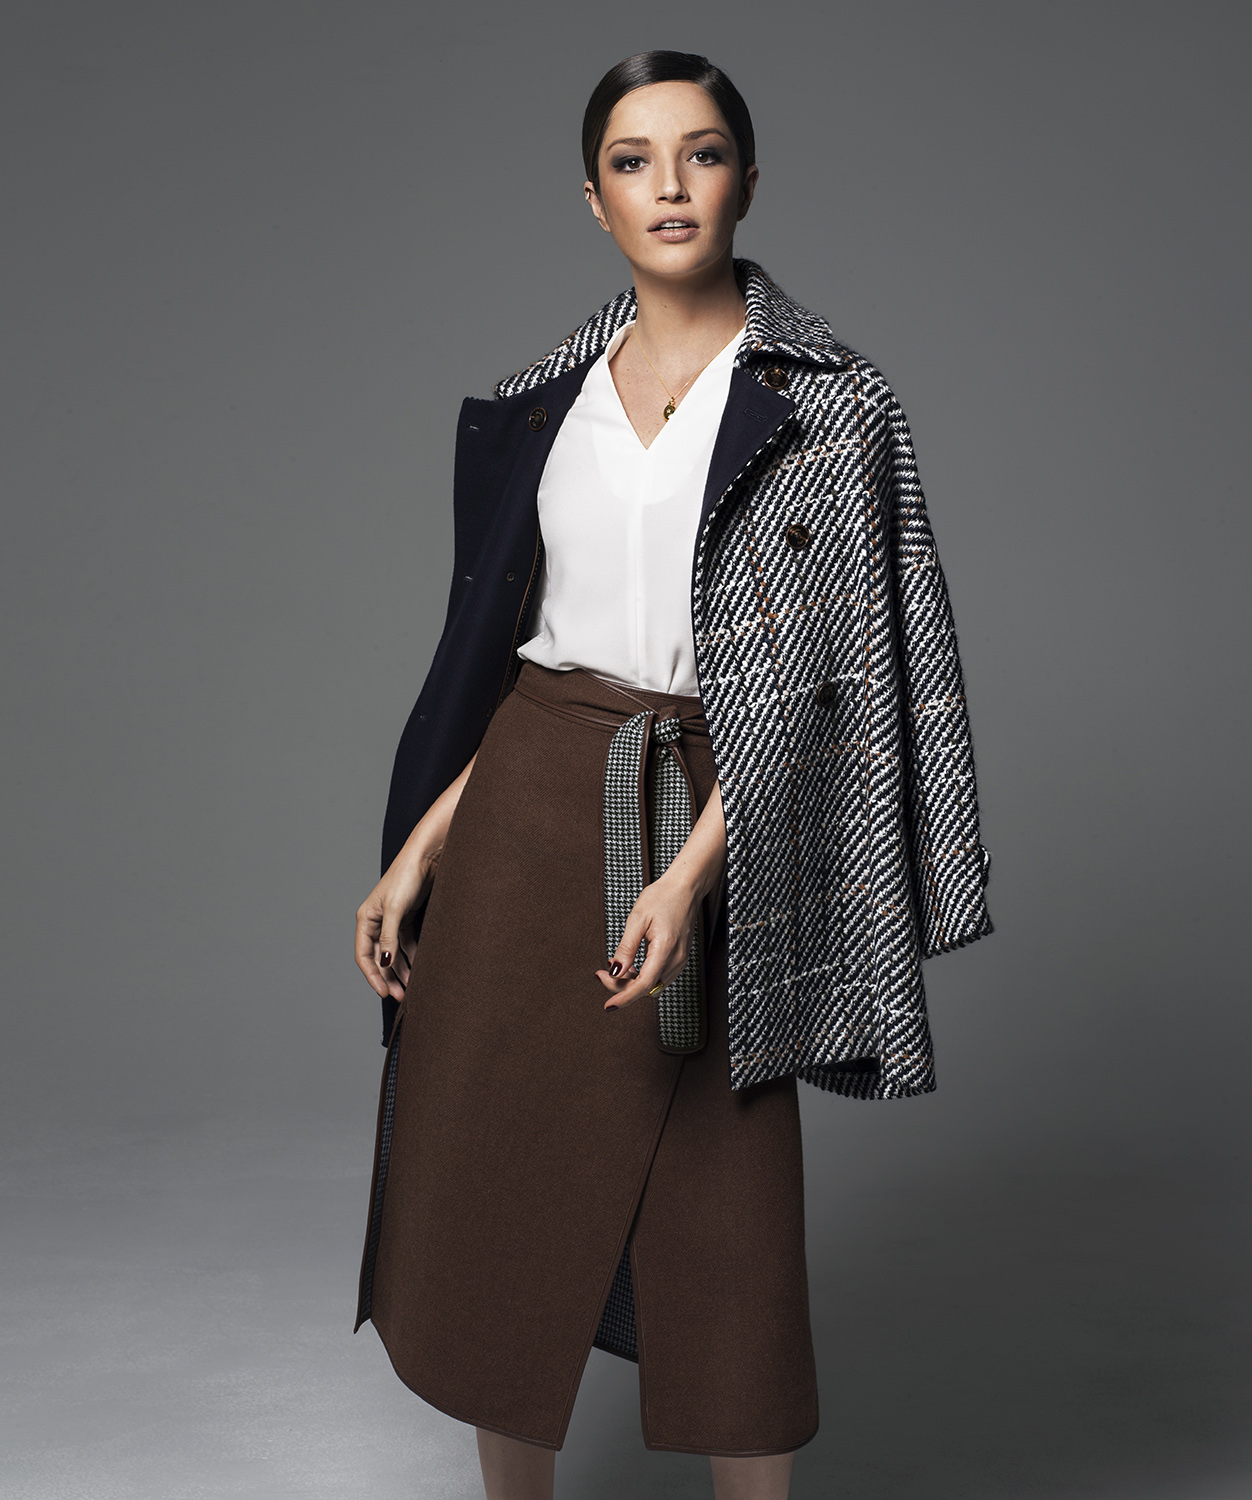 Model wearing wool coat and brown skirt